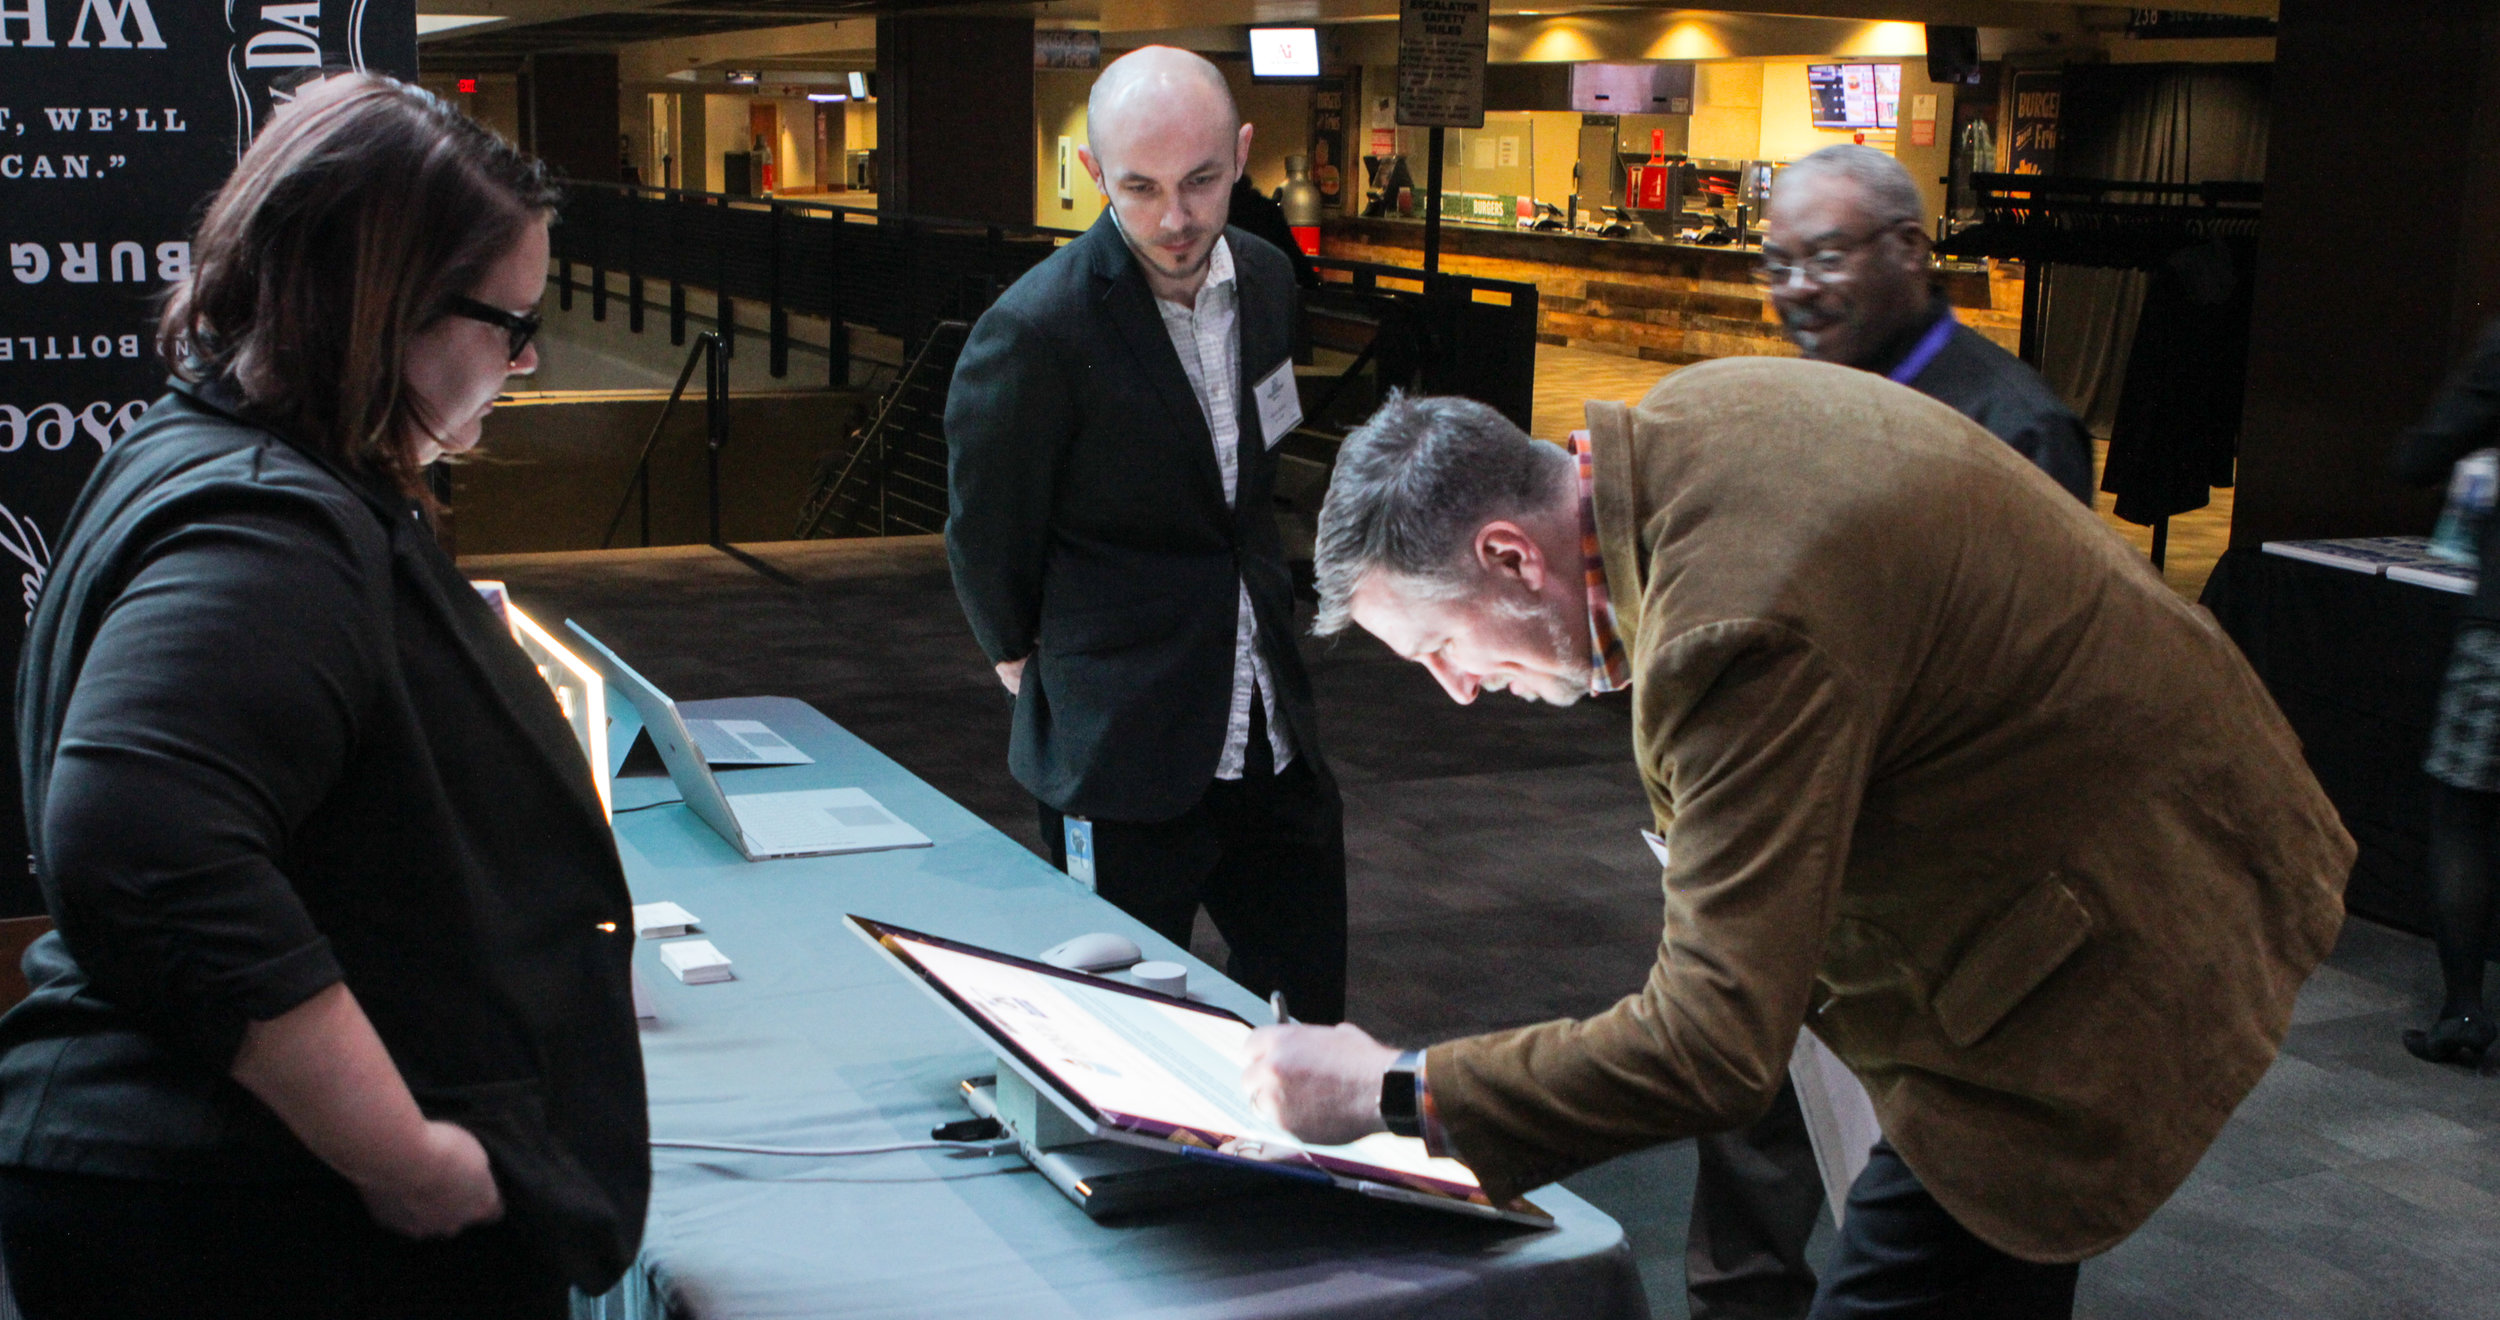 Microsoft displayed some of its newest technology to assist partners in recommitting to the work of the Academies of Nashville.